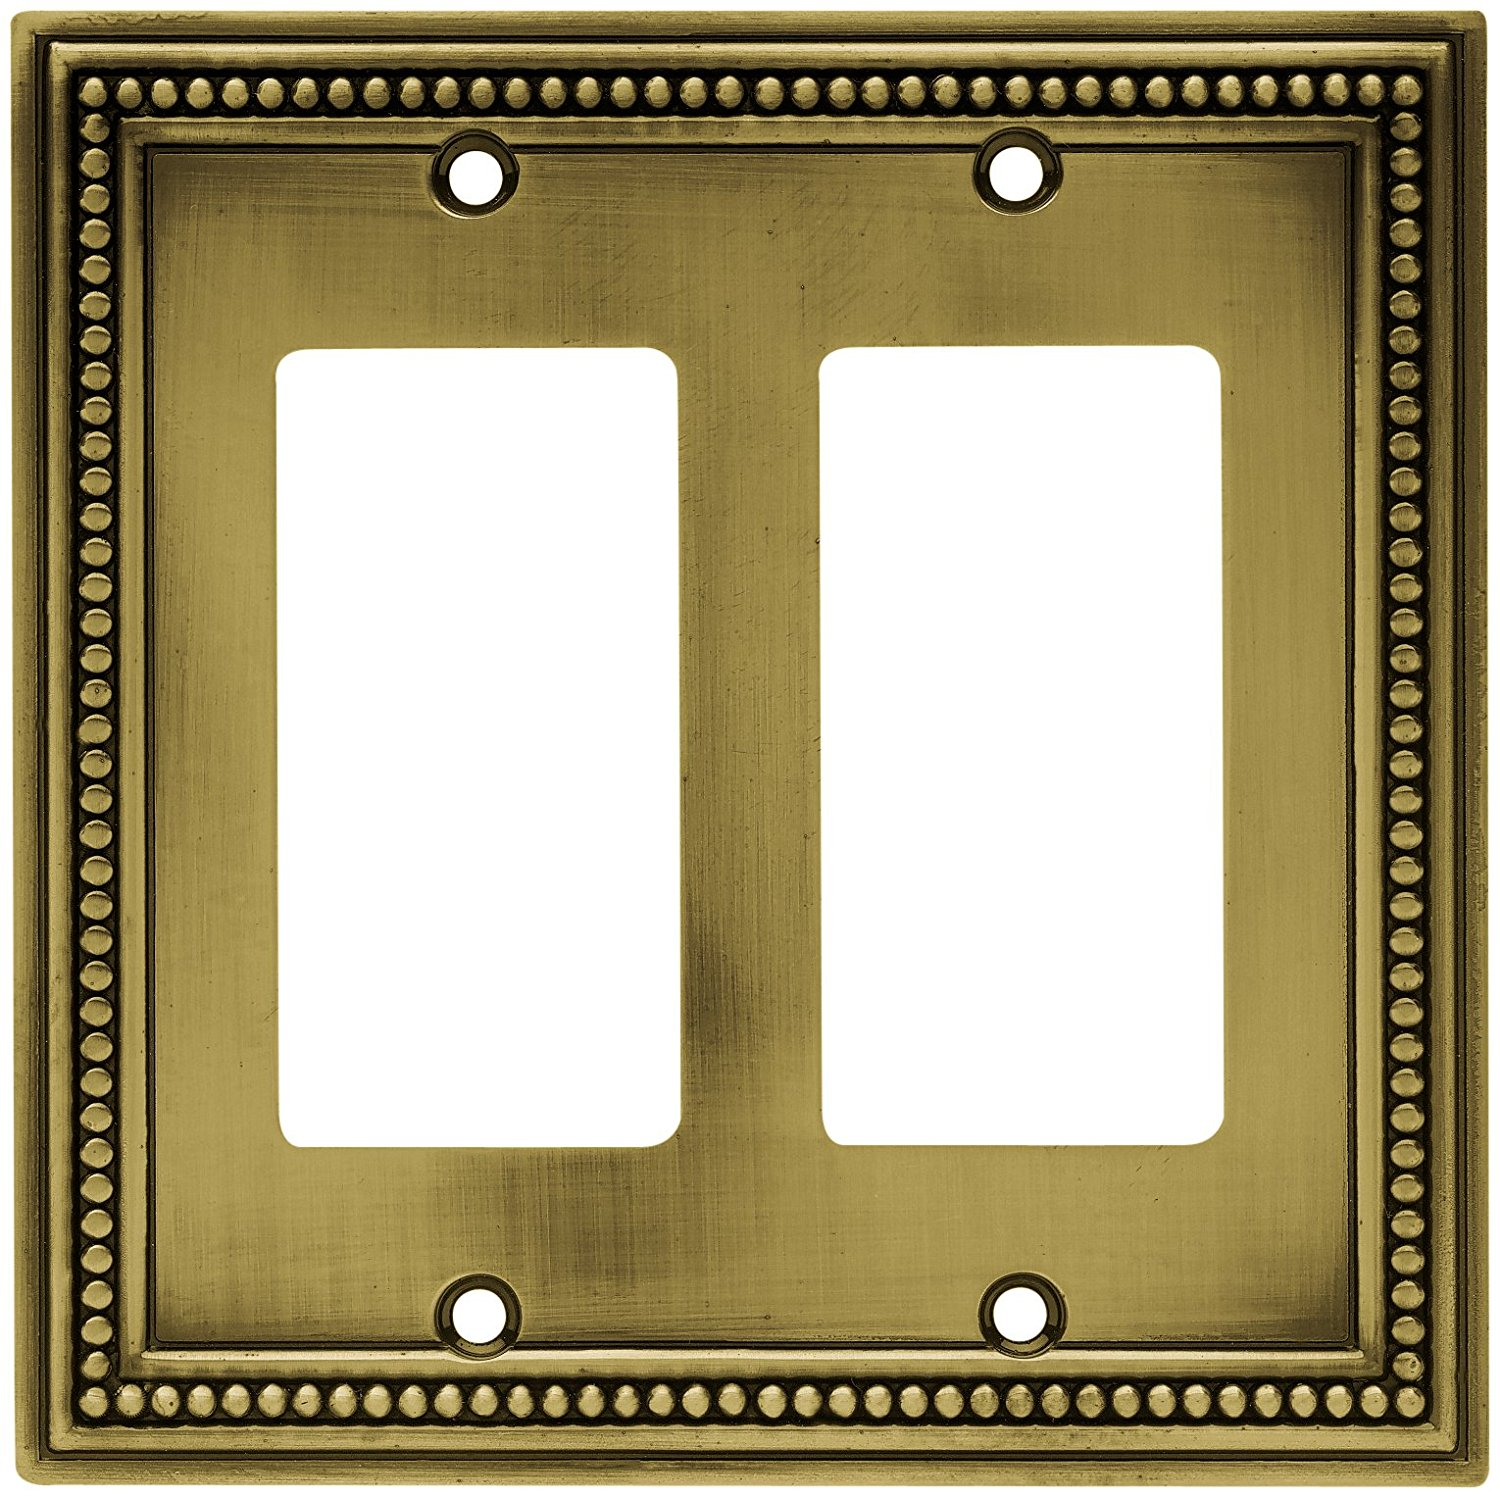 64403 Beaded Double Decorator Wall Plate Switch Plate Cover